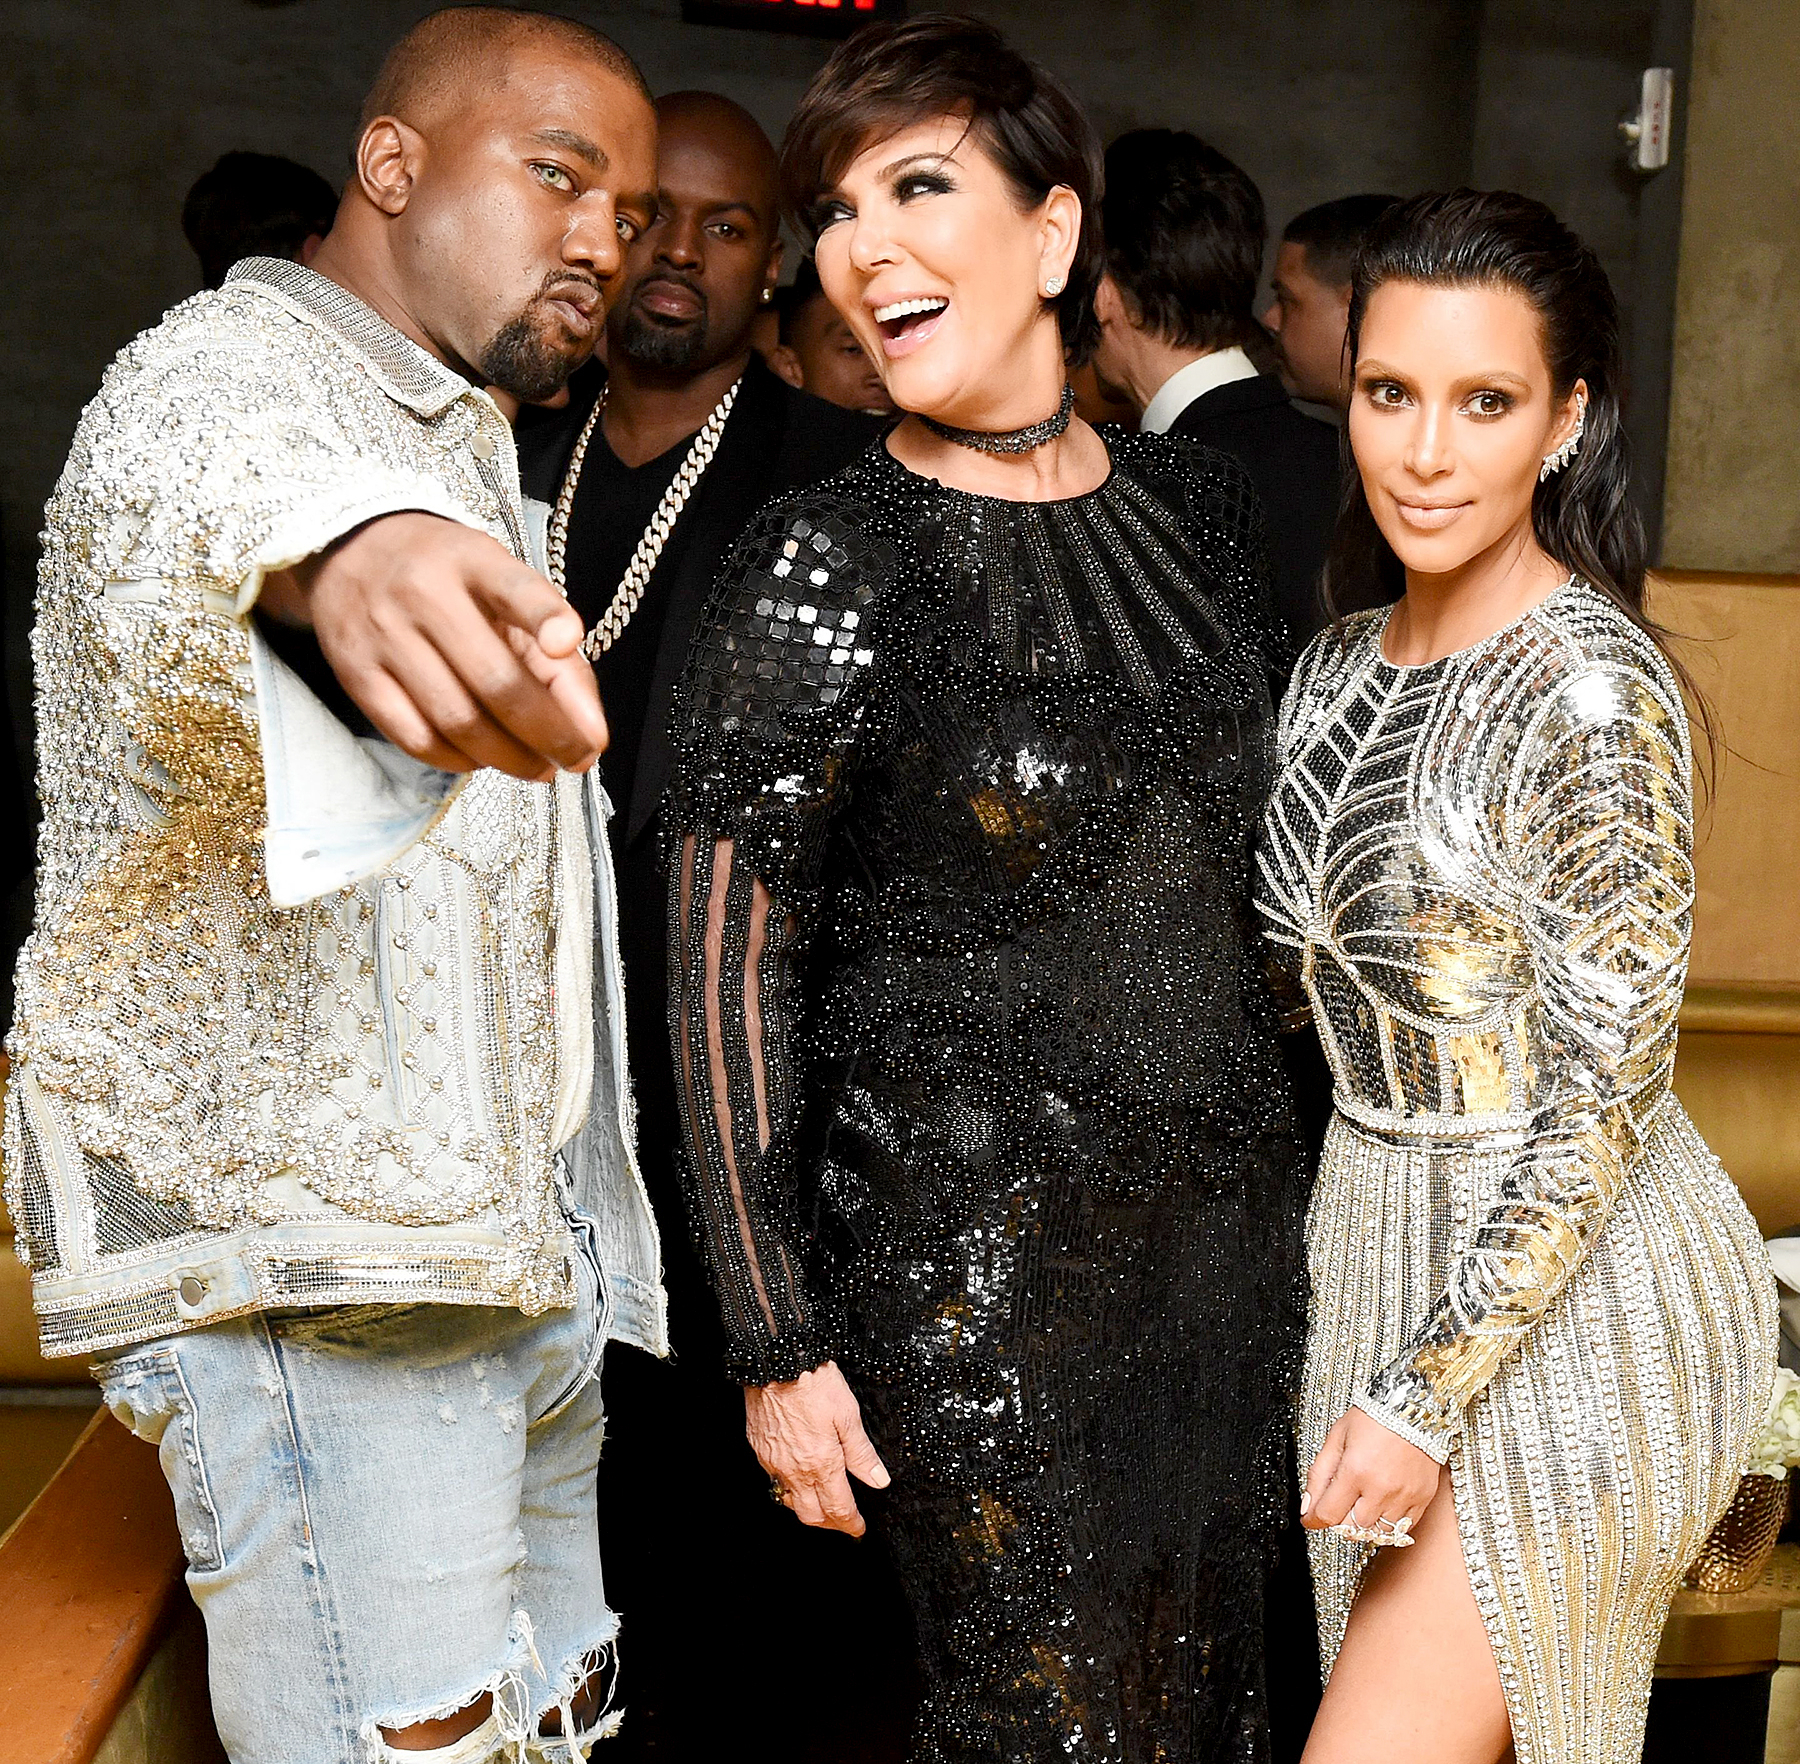 Kanye West, Kris Jenner, and Kim Kardashian